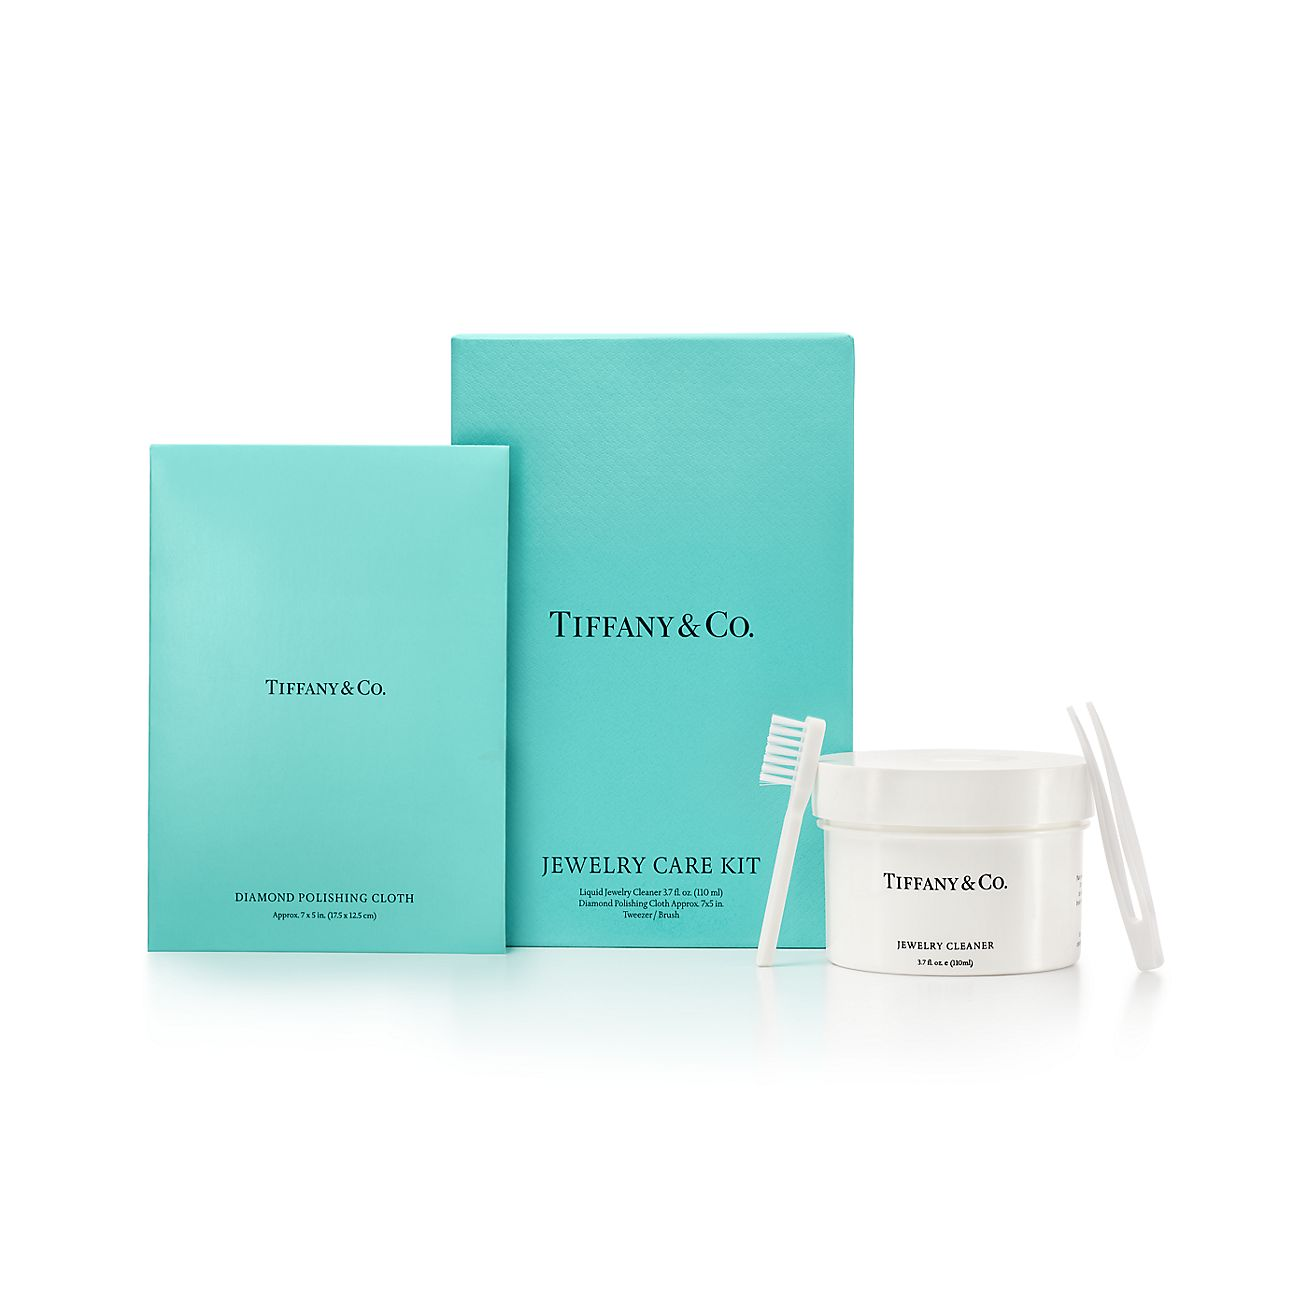 18++ Tiffany jewelry care kit review viral